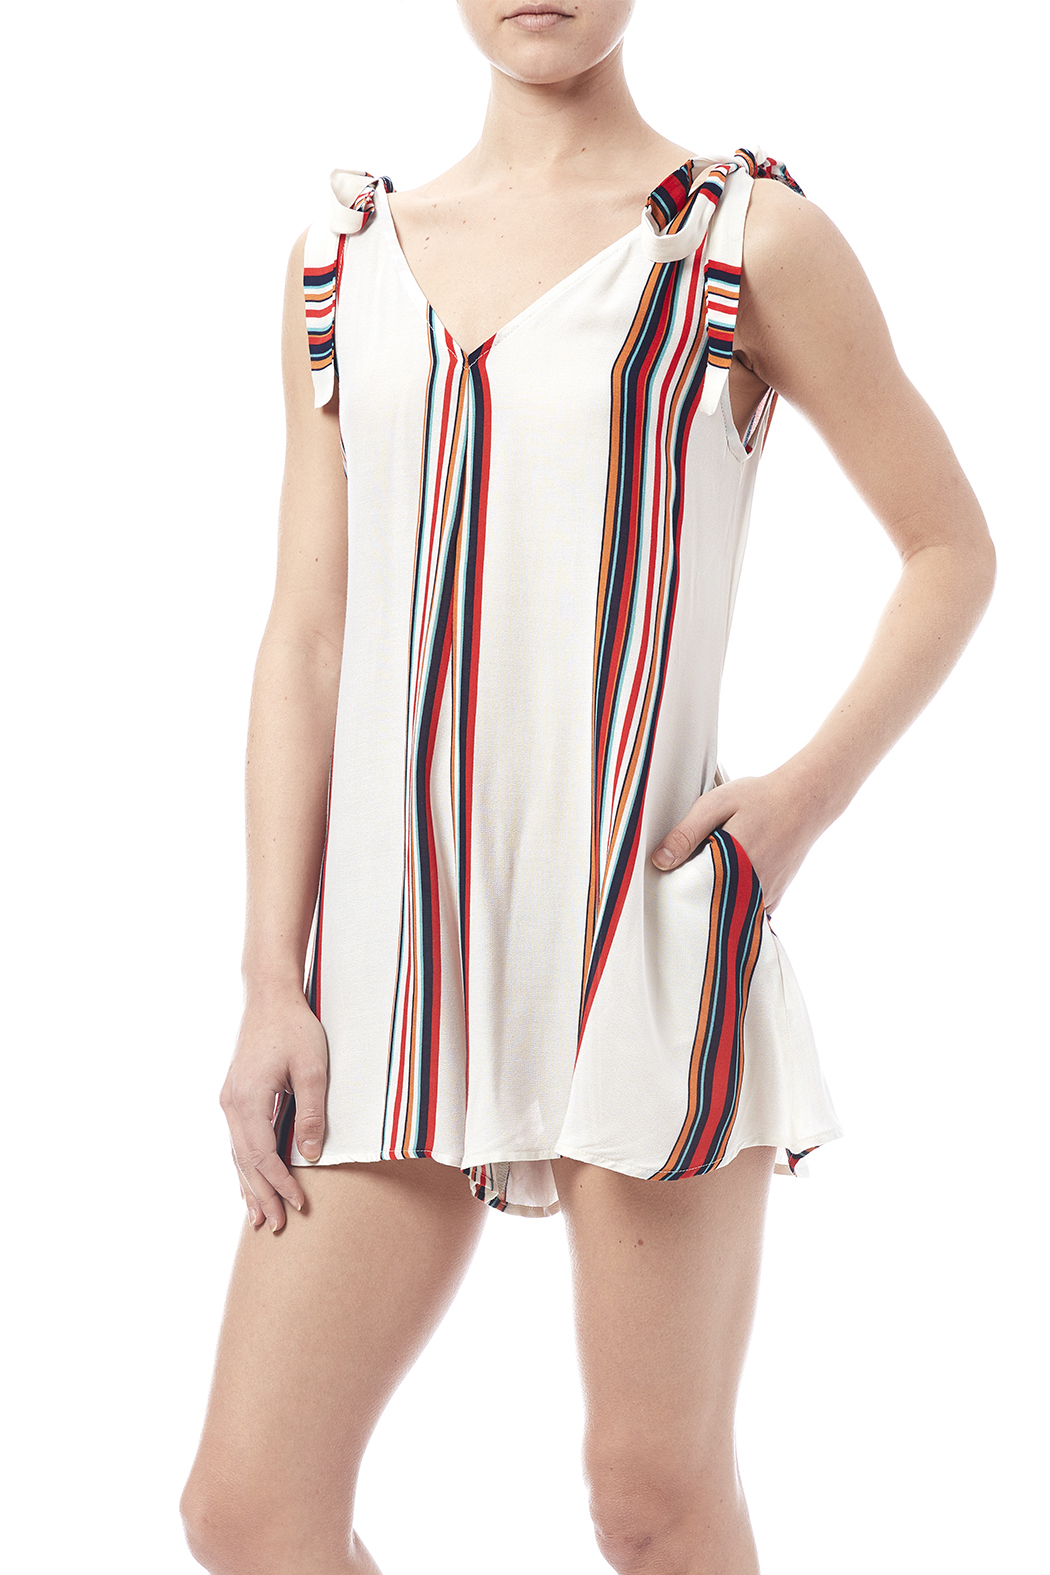 timeless 70 s romper from los angeles shoptiques